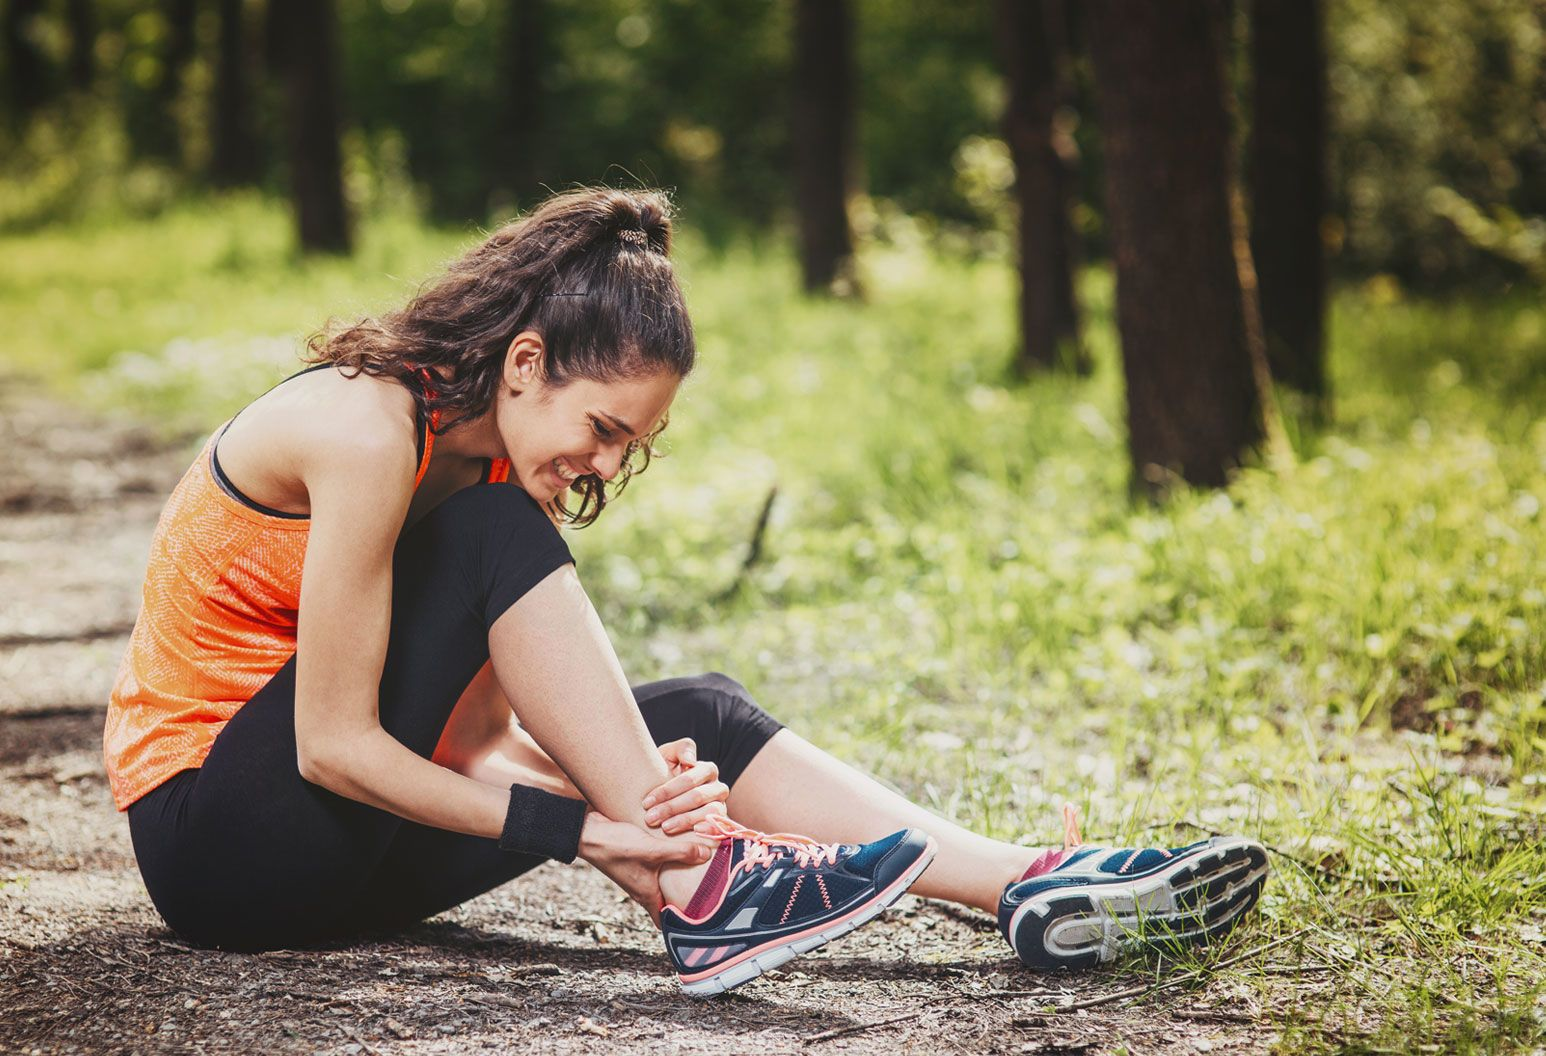 A young woman on a hike sits on the ground and holds her ankle in pain. Her brown hair is in a high pony tail and she's wearing an orange tank top, black leggings and sneakers. She's outside with grass and trees behind her.